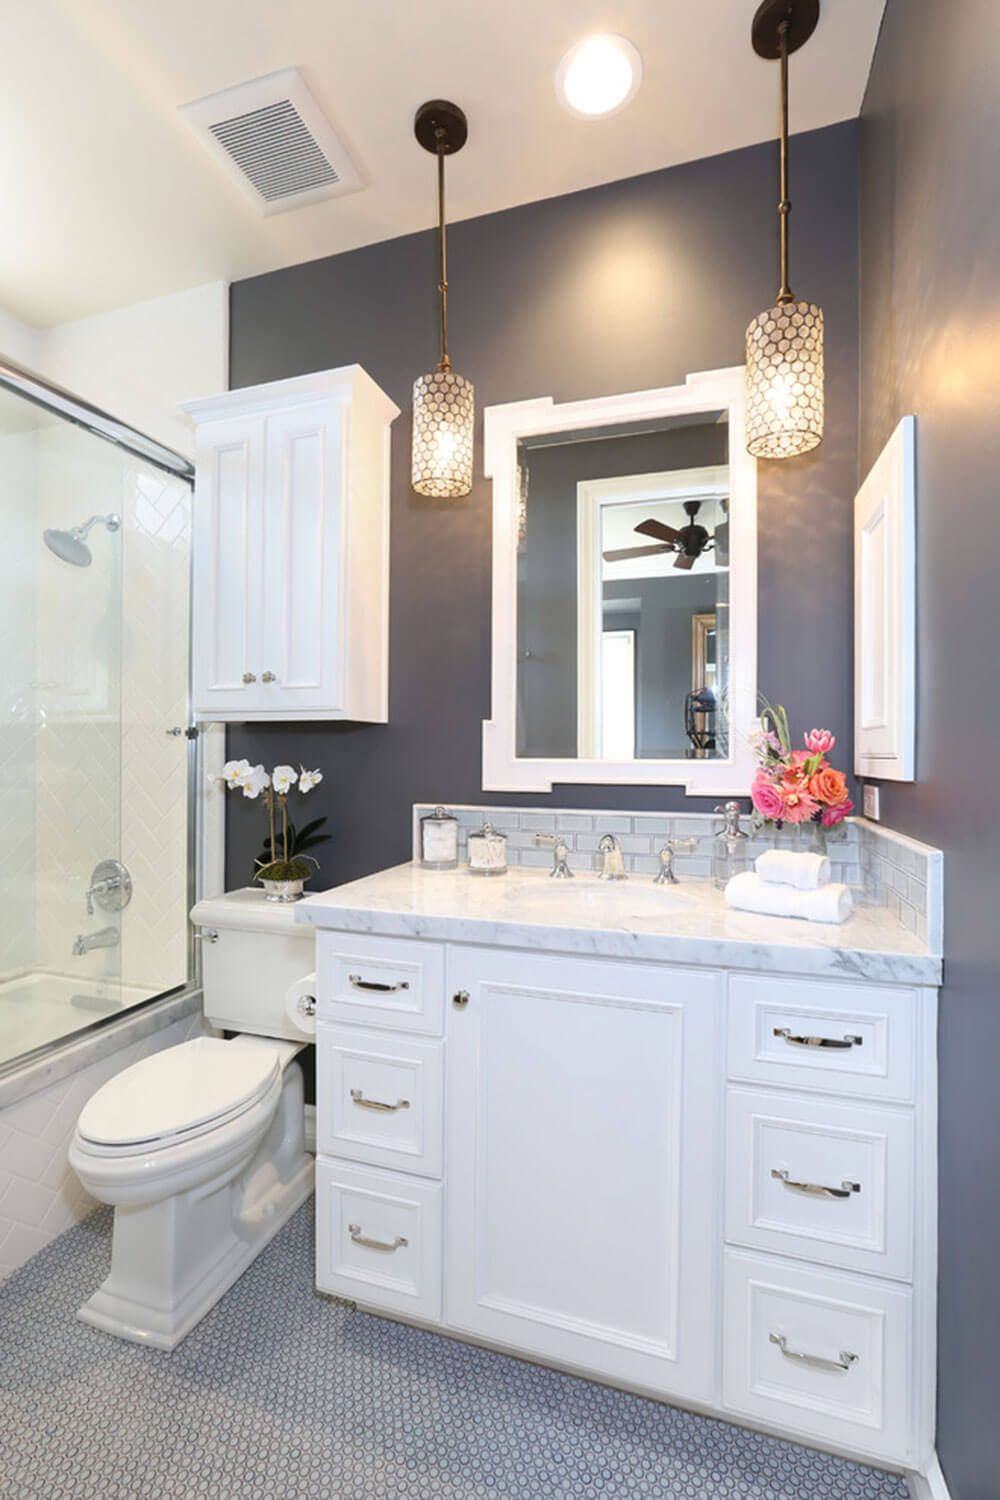 32 Small Bathroom Design Ideas for Every Taste | Dark grey, Dark and ...